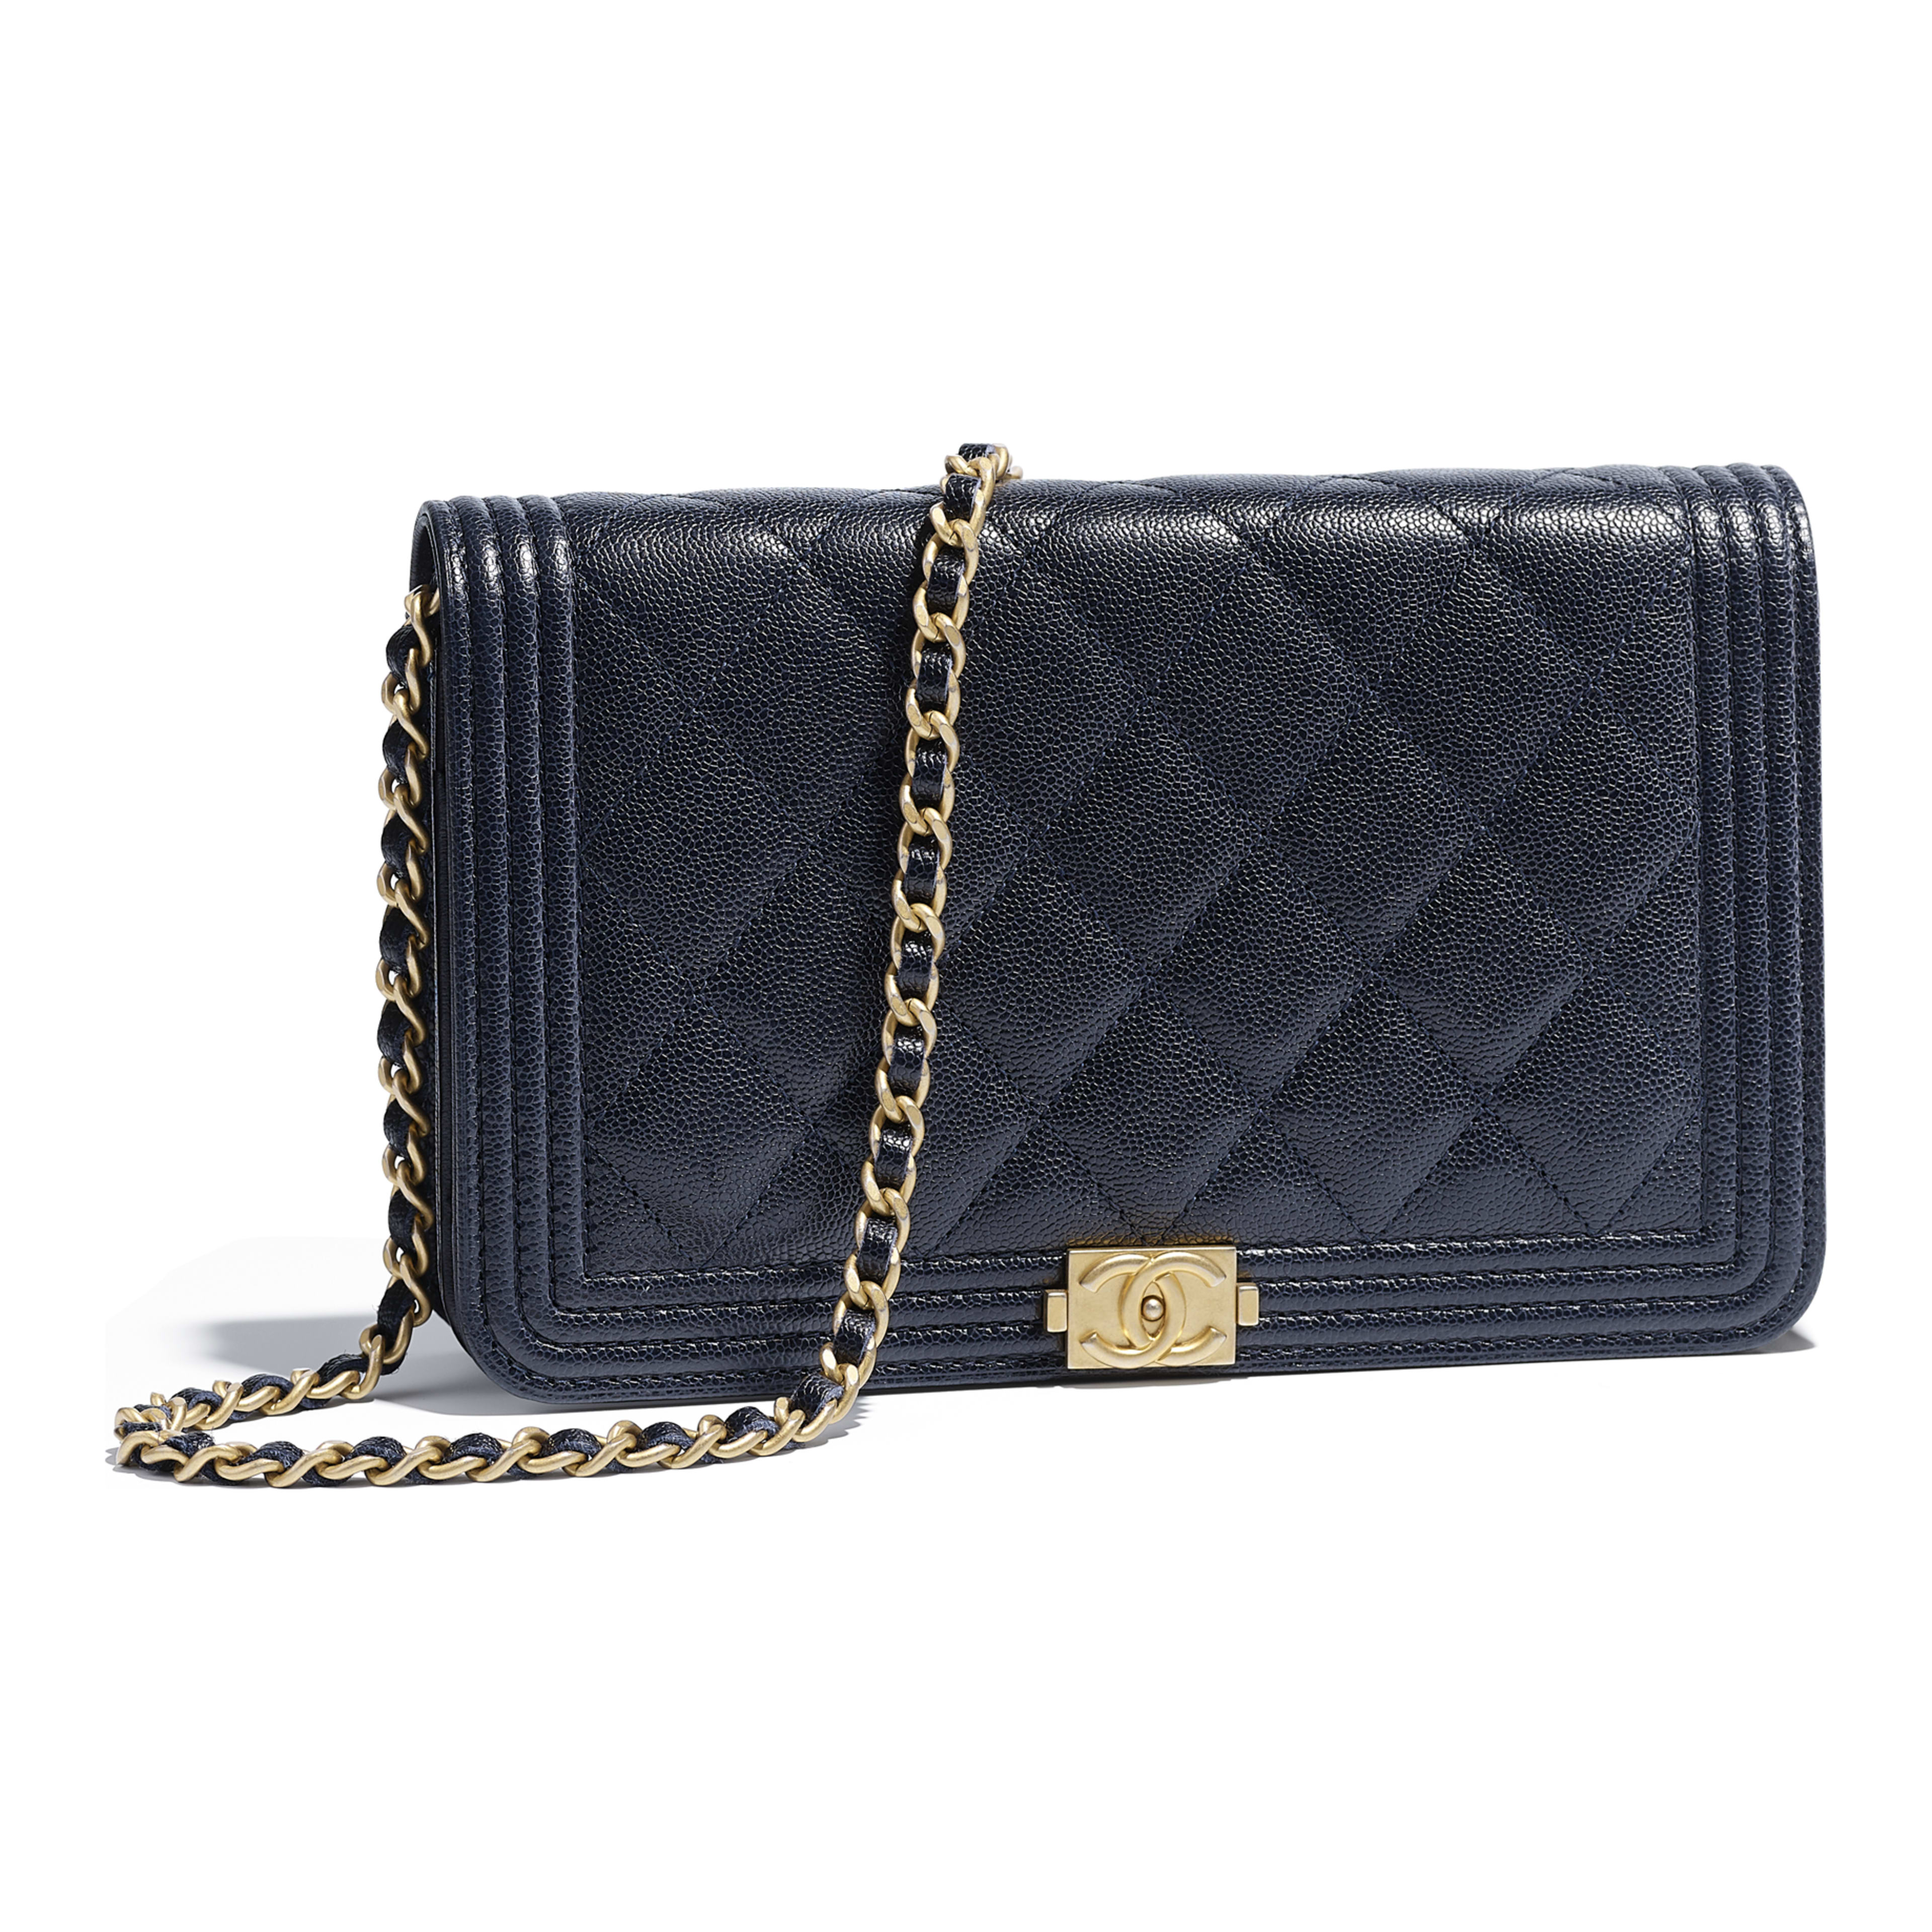 62c8cccb8e67 Grained Calfskin & Gold-Tone Metal Navy Blue BOY CHANEL Wallet on Chain |  CHANEL